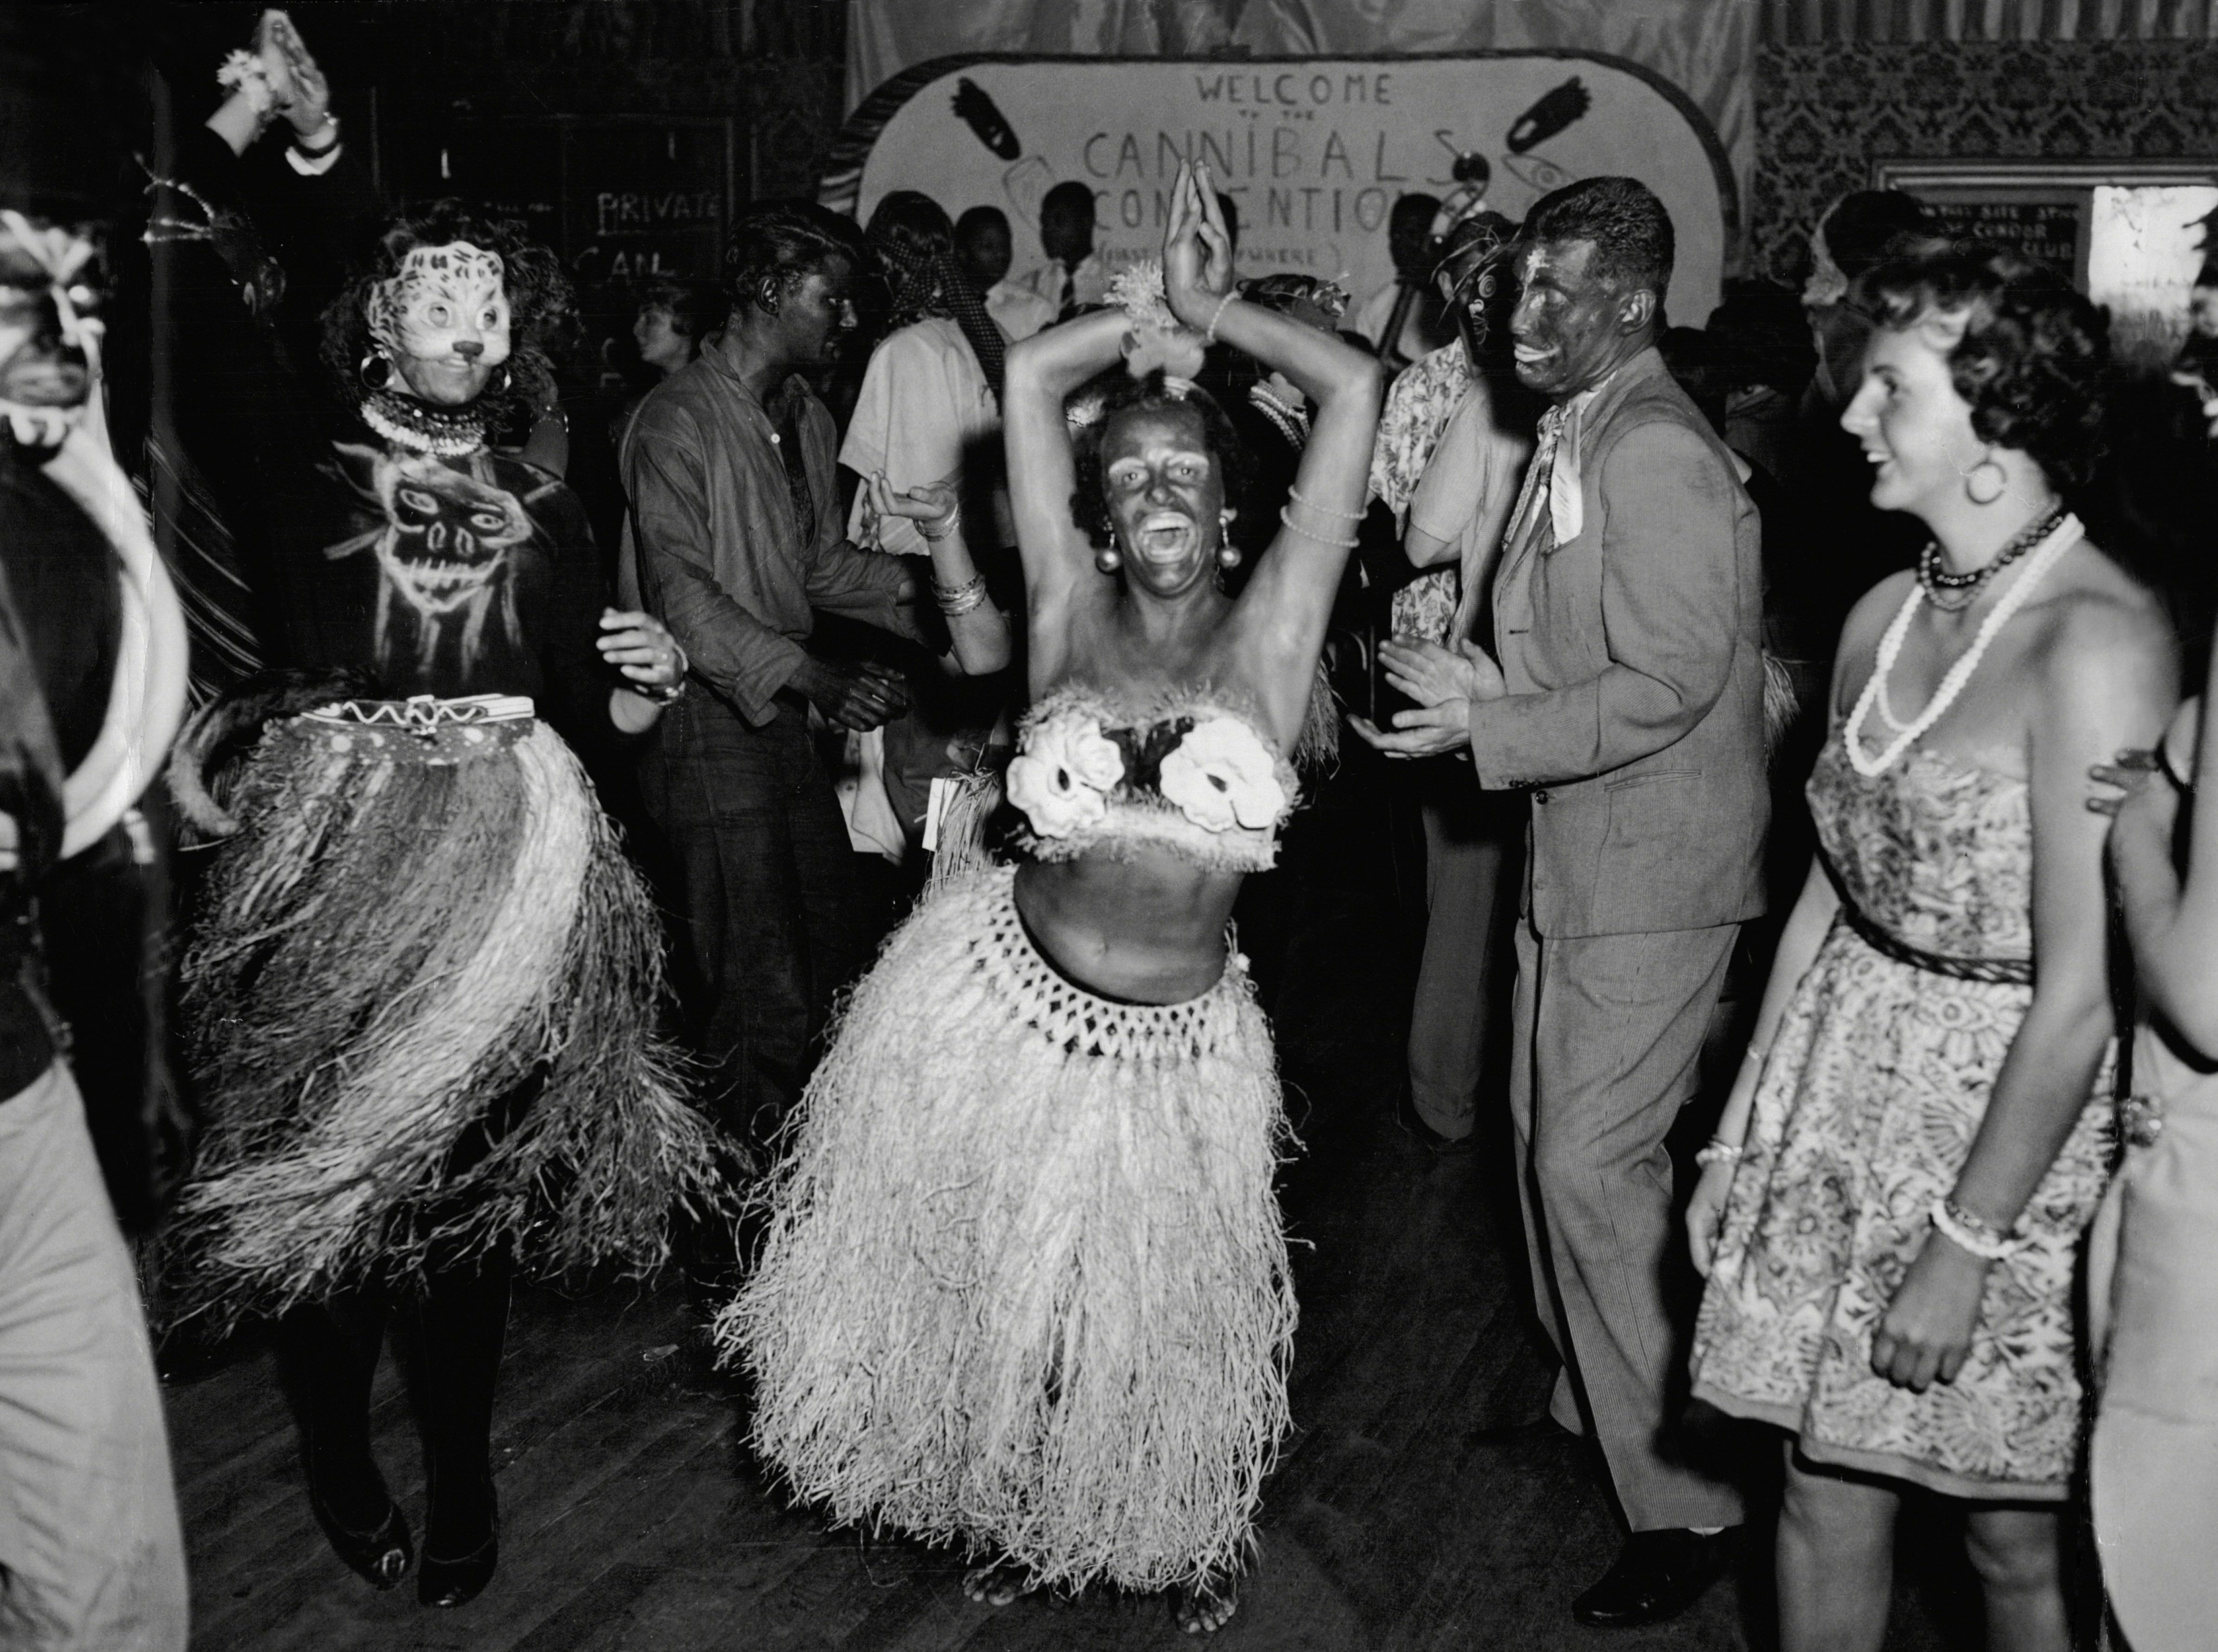 African Ball At Le Condor Club In Wardour Street Soho London 16 Nov 1956 Photo by Anthony Wallace/ANL/REX/Shutterstock